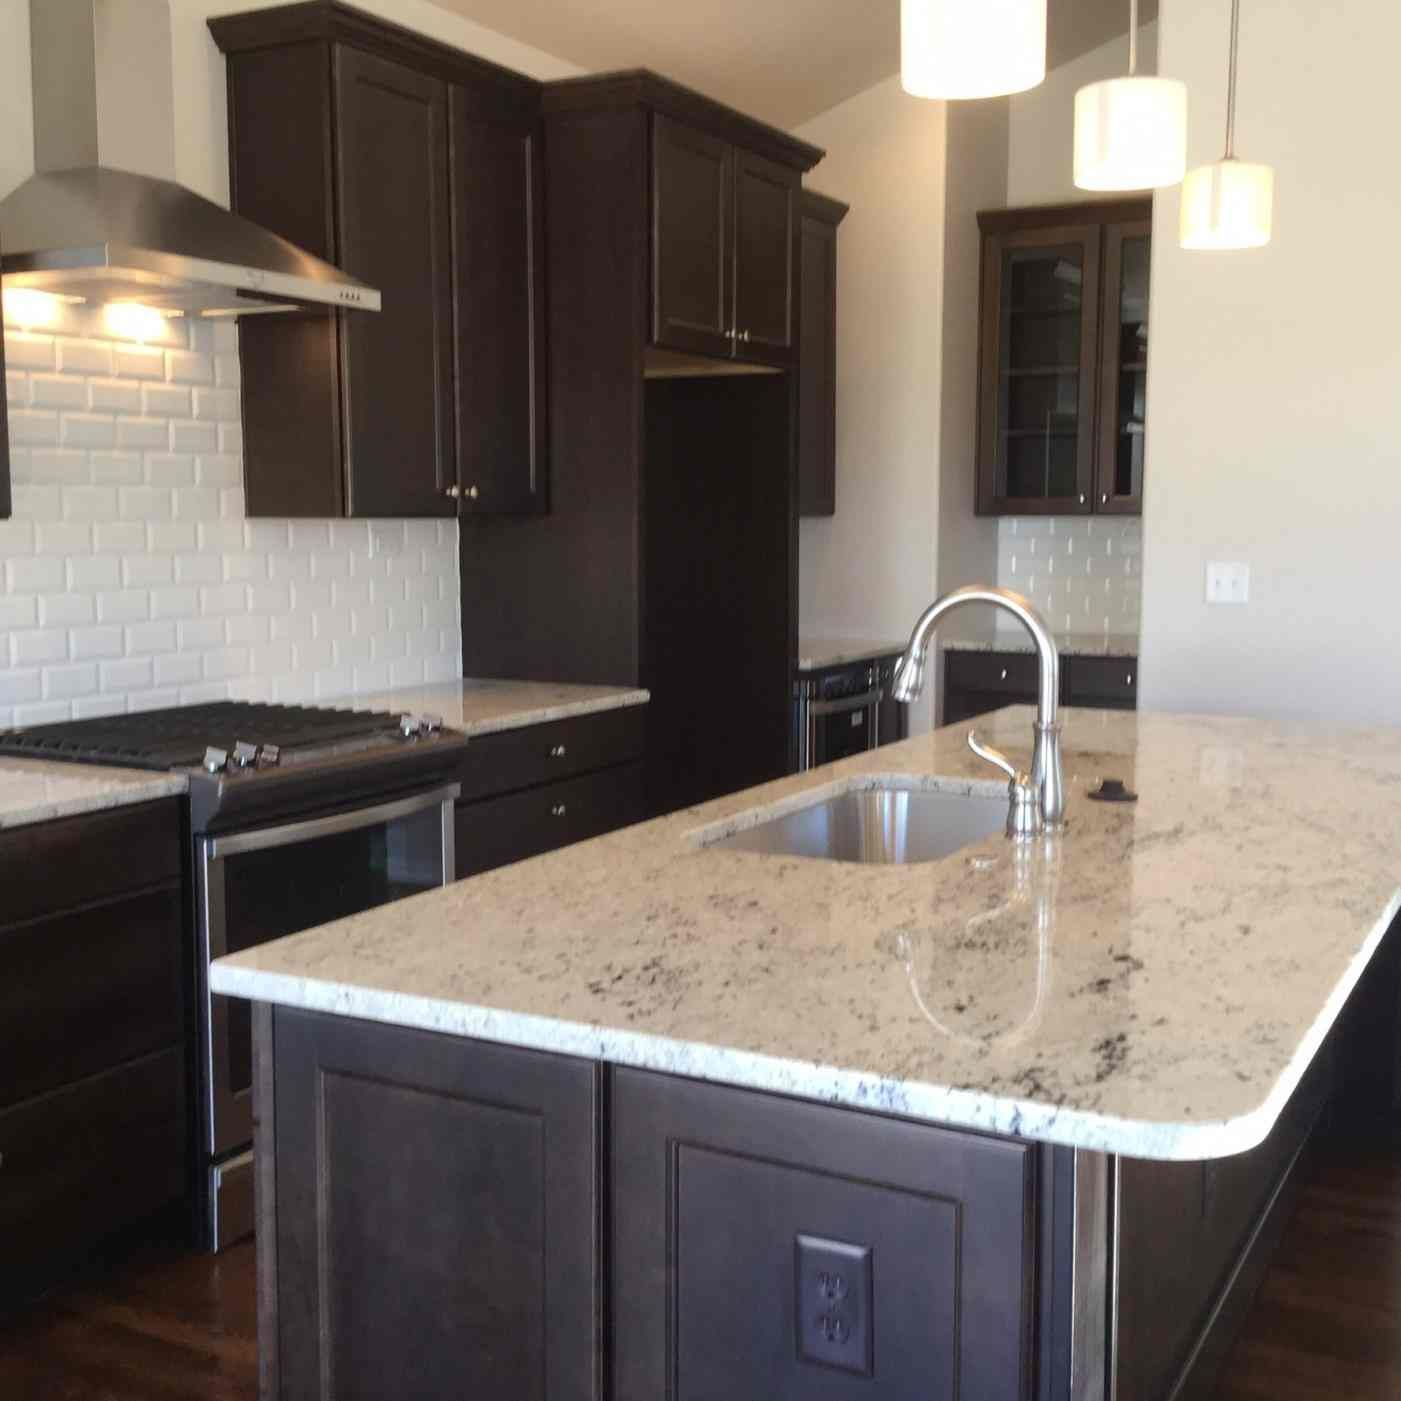 15 Stunning Colonial White Granite Countertops Ideas For ... on Backsplash Ideas For White Cabinets And Black Granite Countertops  id=63221